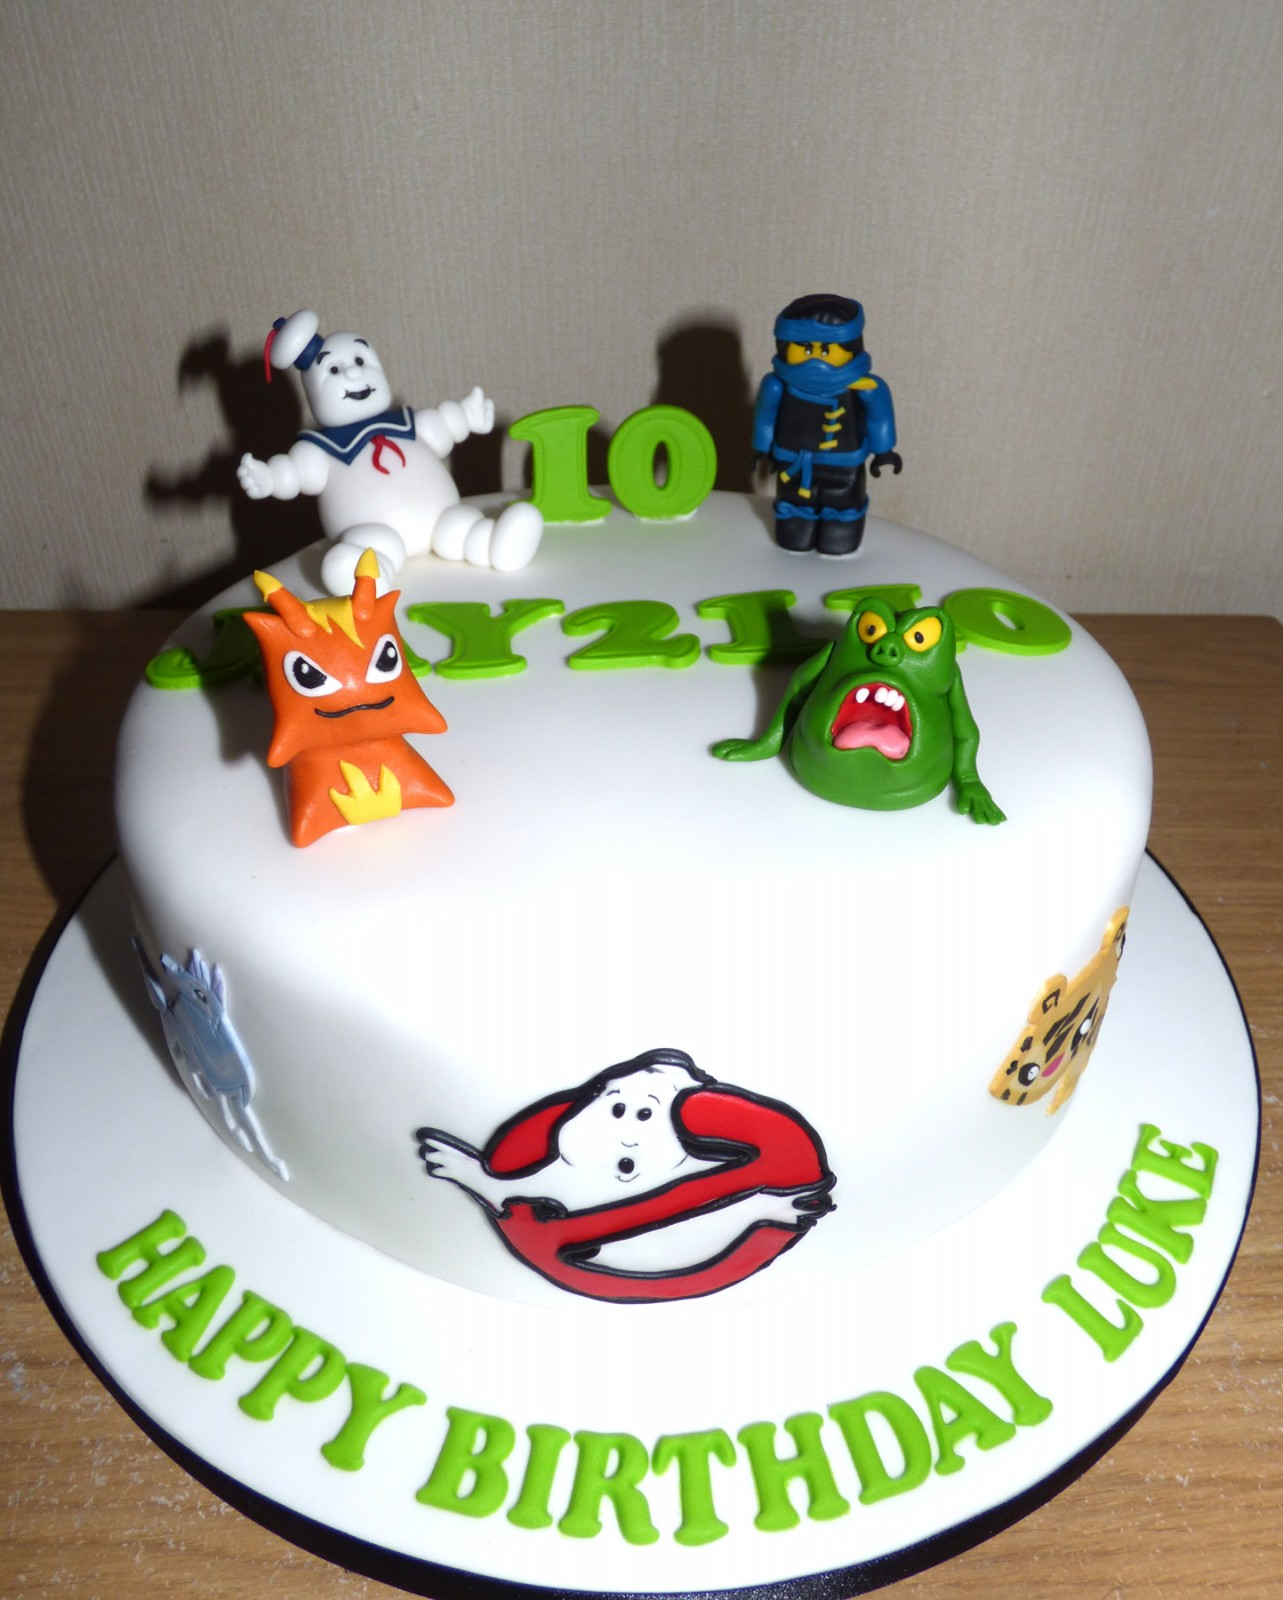 Childs Favourite Characters Birthday Cake